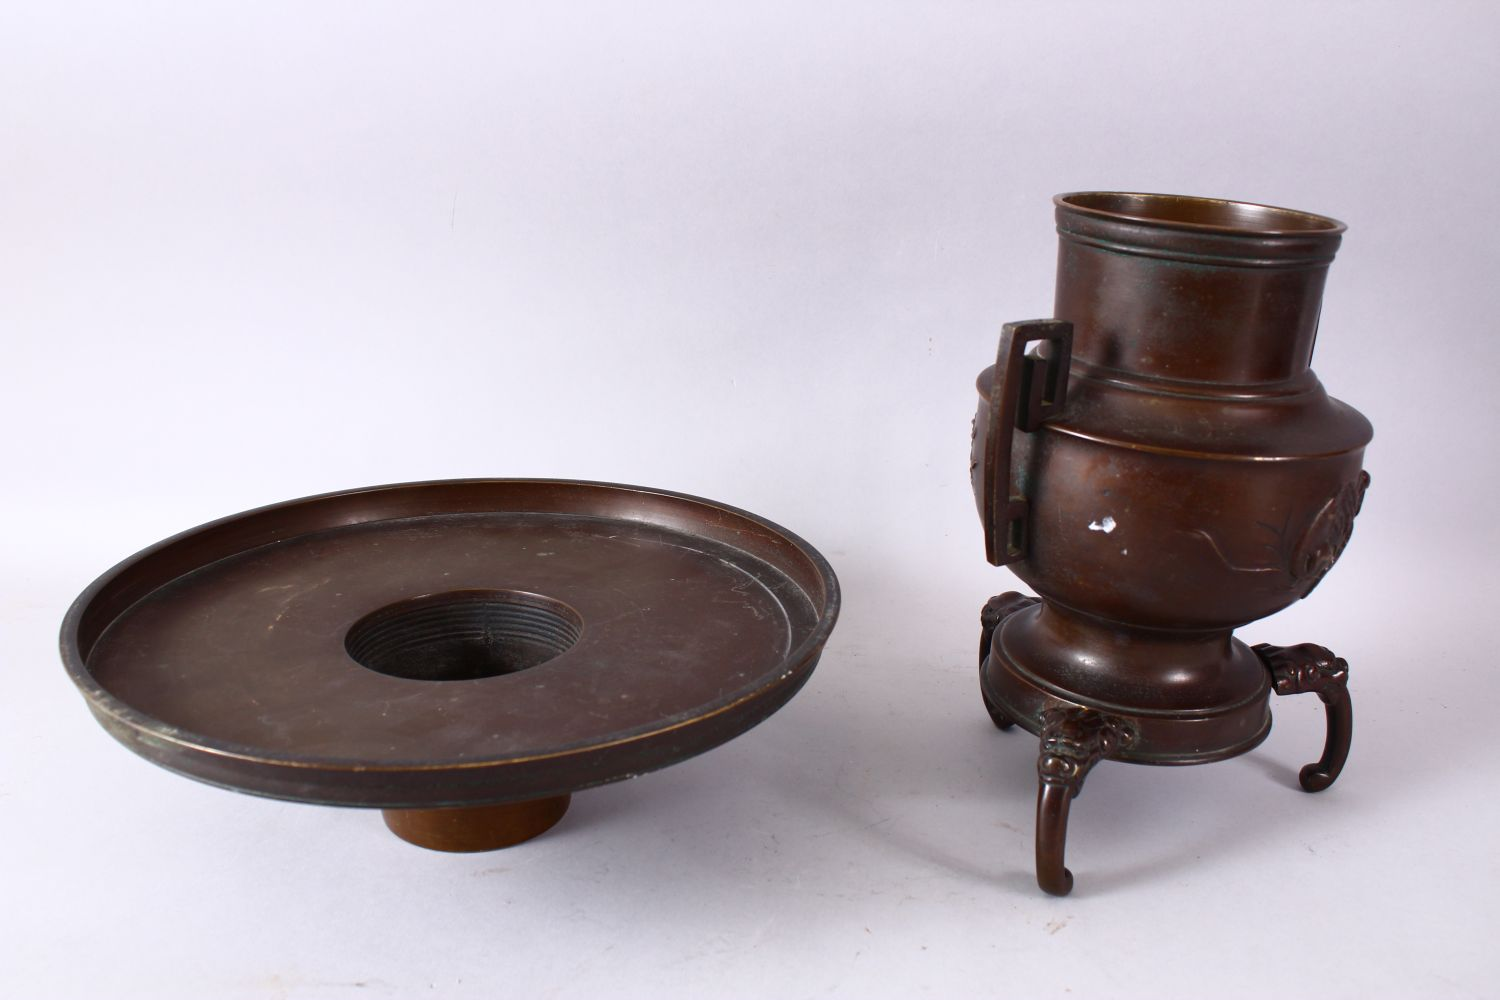 A 19TH CENTURY JAPANESE BRONZE TWO HANDLED VASE on three curving legs, with large circular top - Image 6 of 6